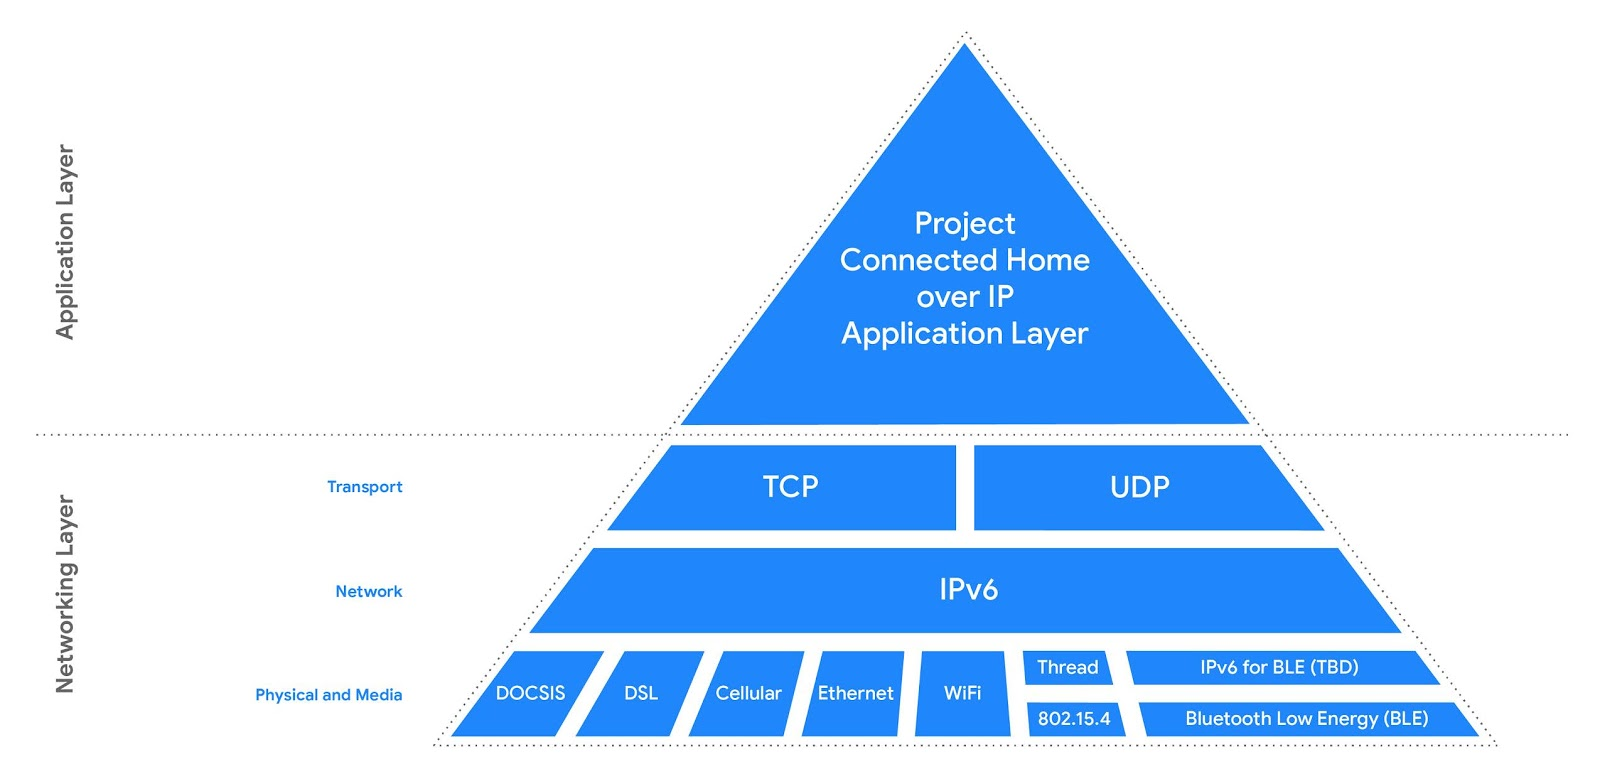 Pyramid diagram showing Project Connected Home over IP Application layer